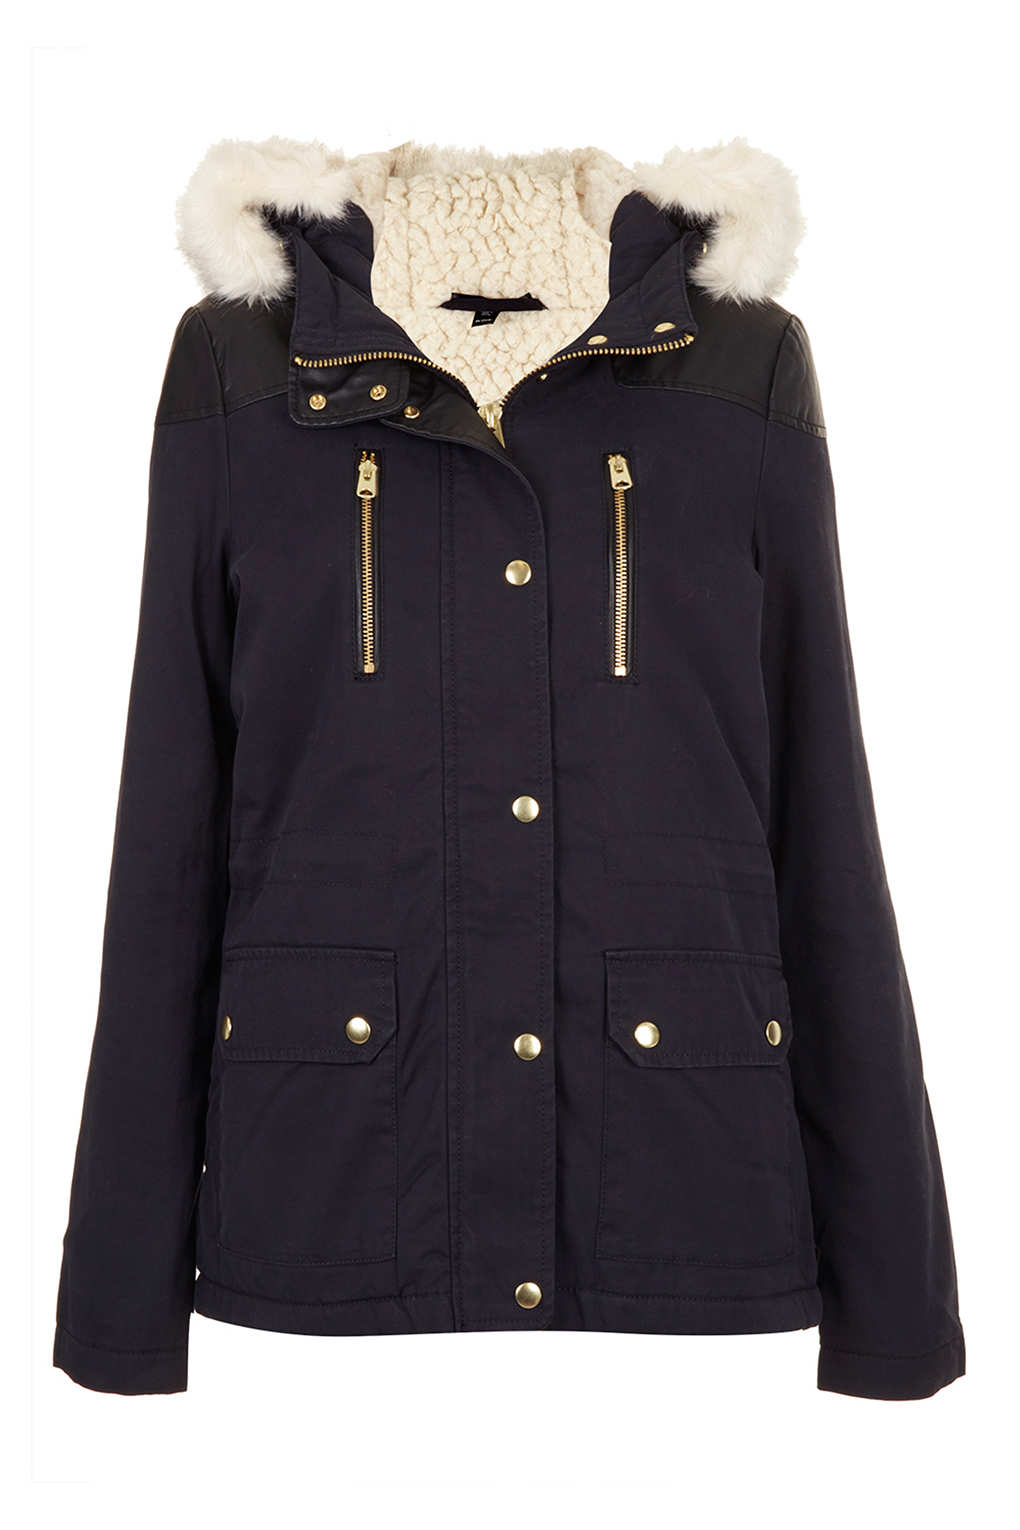 Modern Eternity 3 in 1 padded parka coat with detachable faux fur hood.